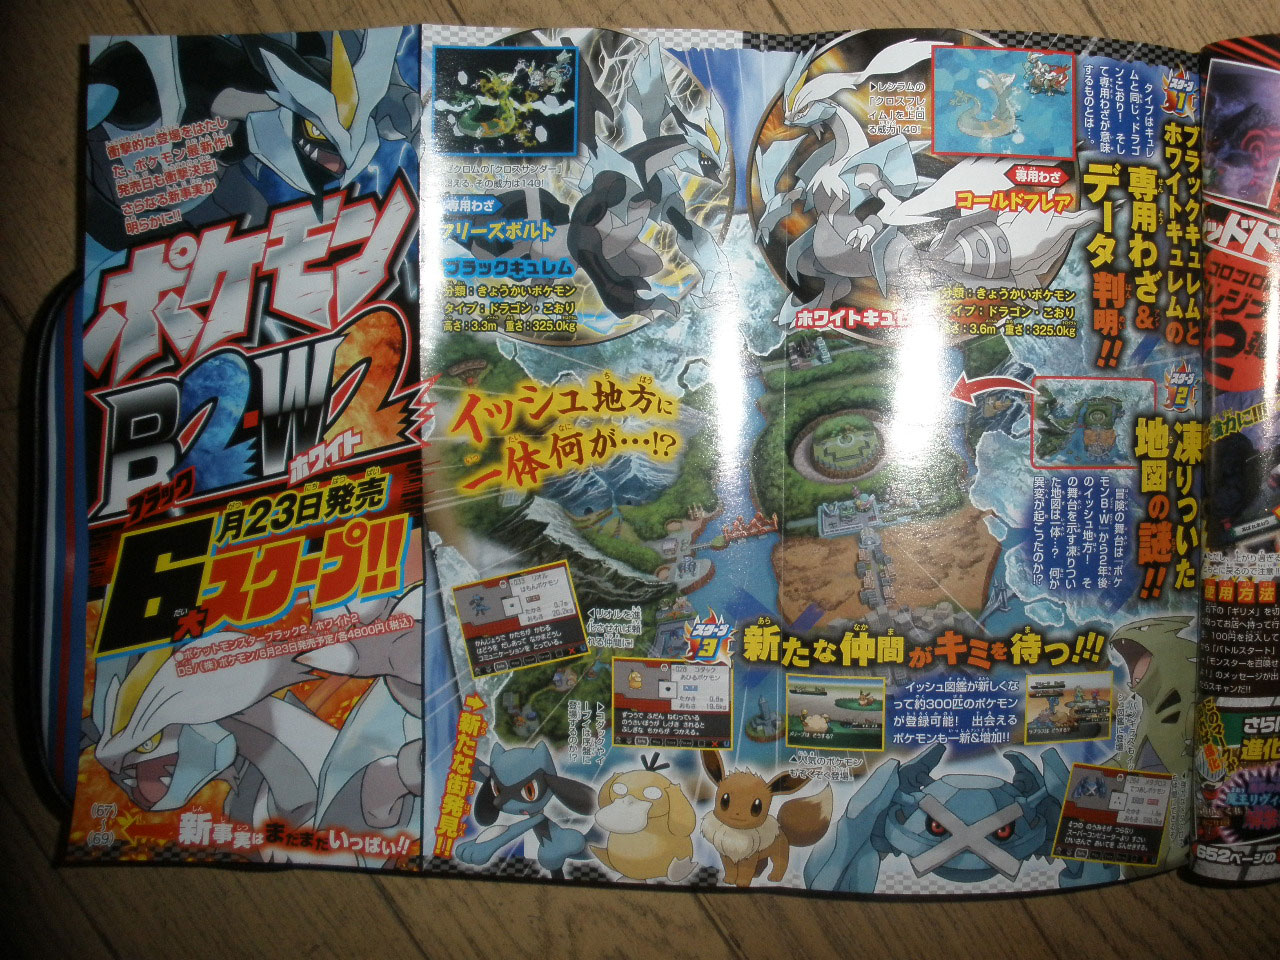 May CoroCoro Scans, New Pokemon Black/White 2 details